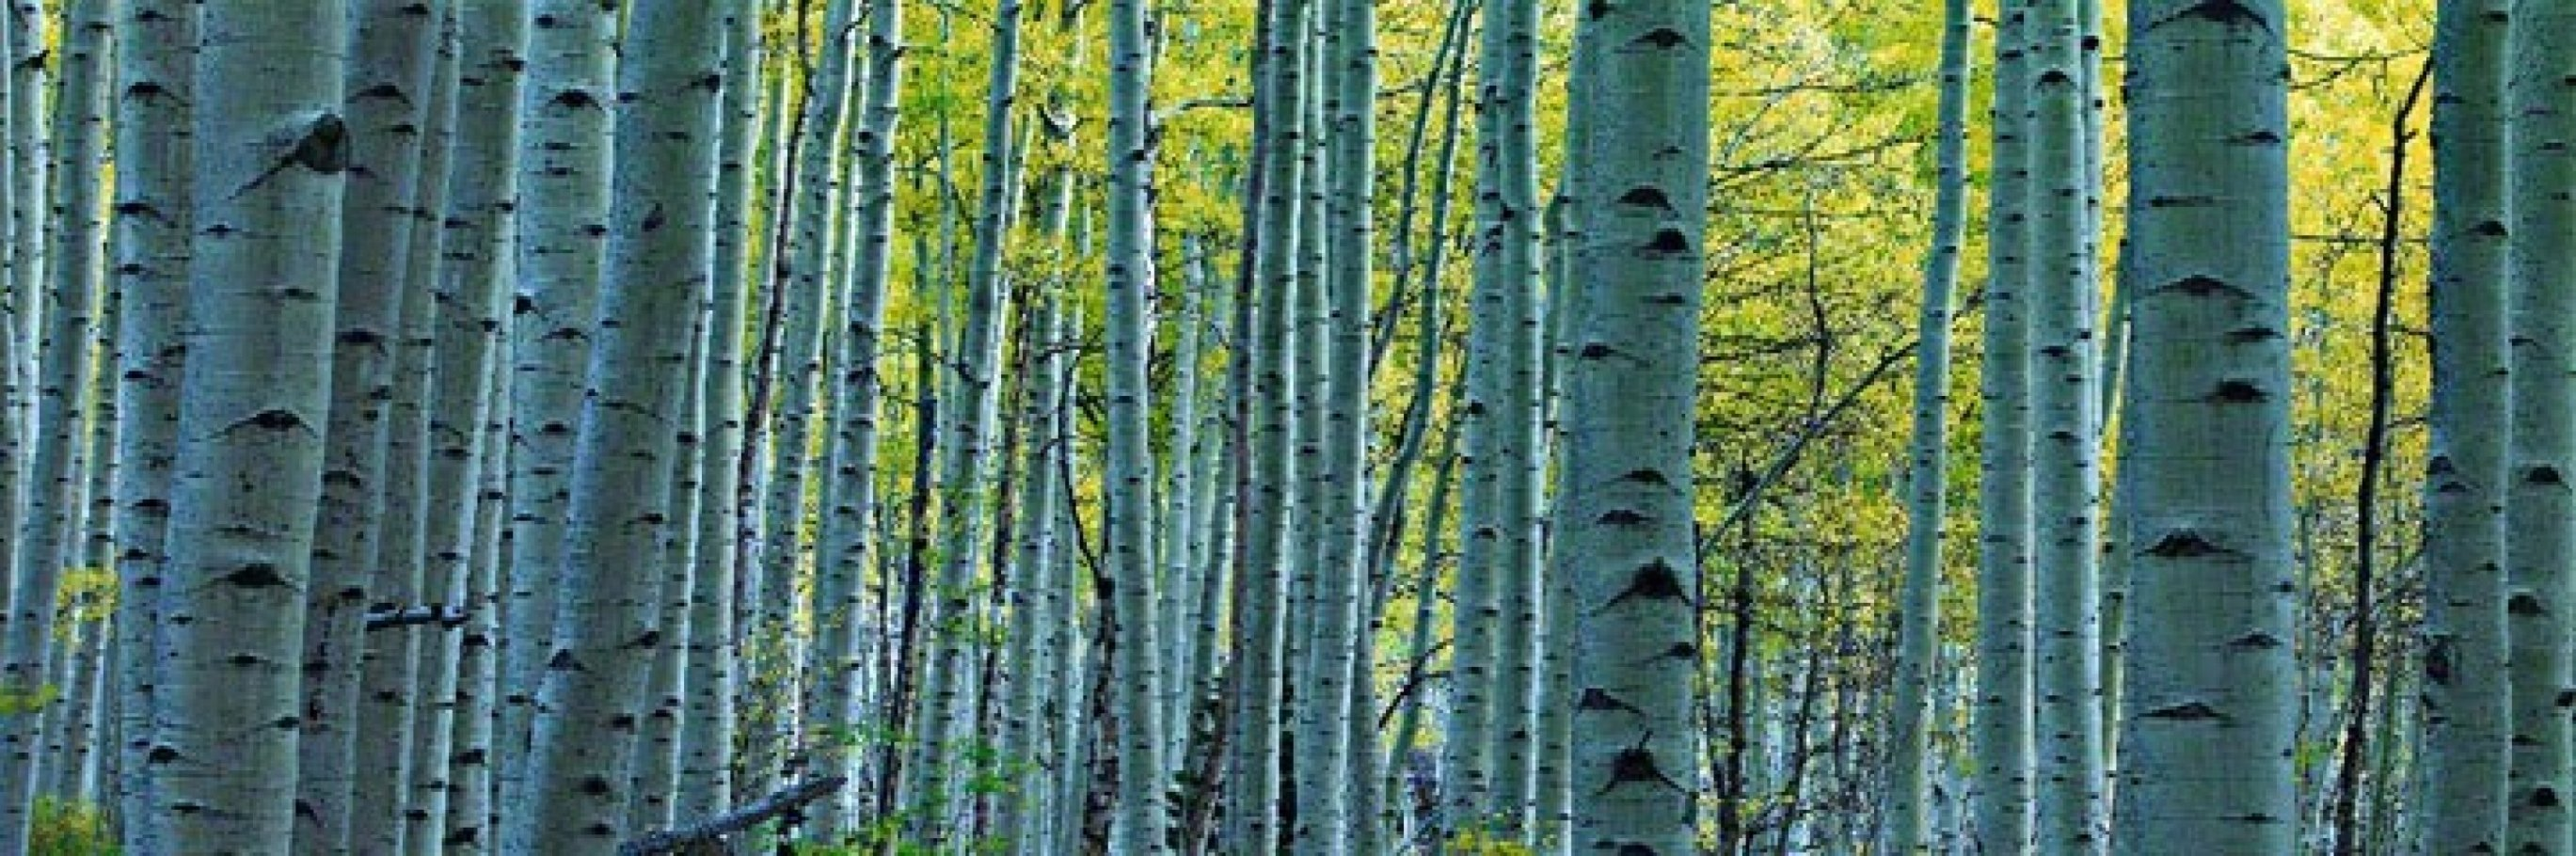 Endless Birches Colorado 1.5M Huge Panorama by Peter Lik